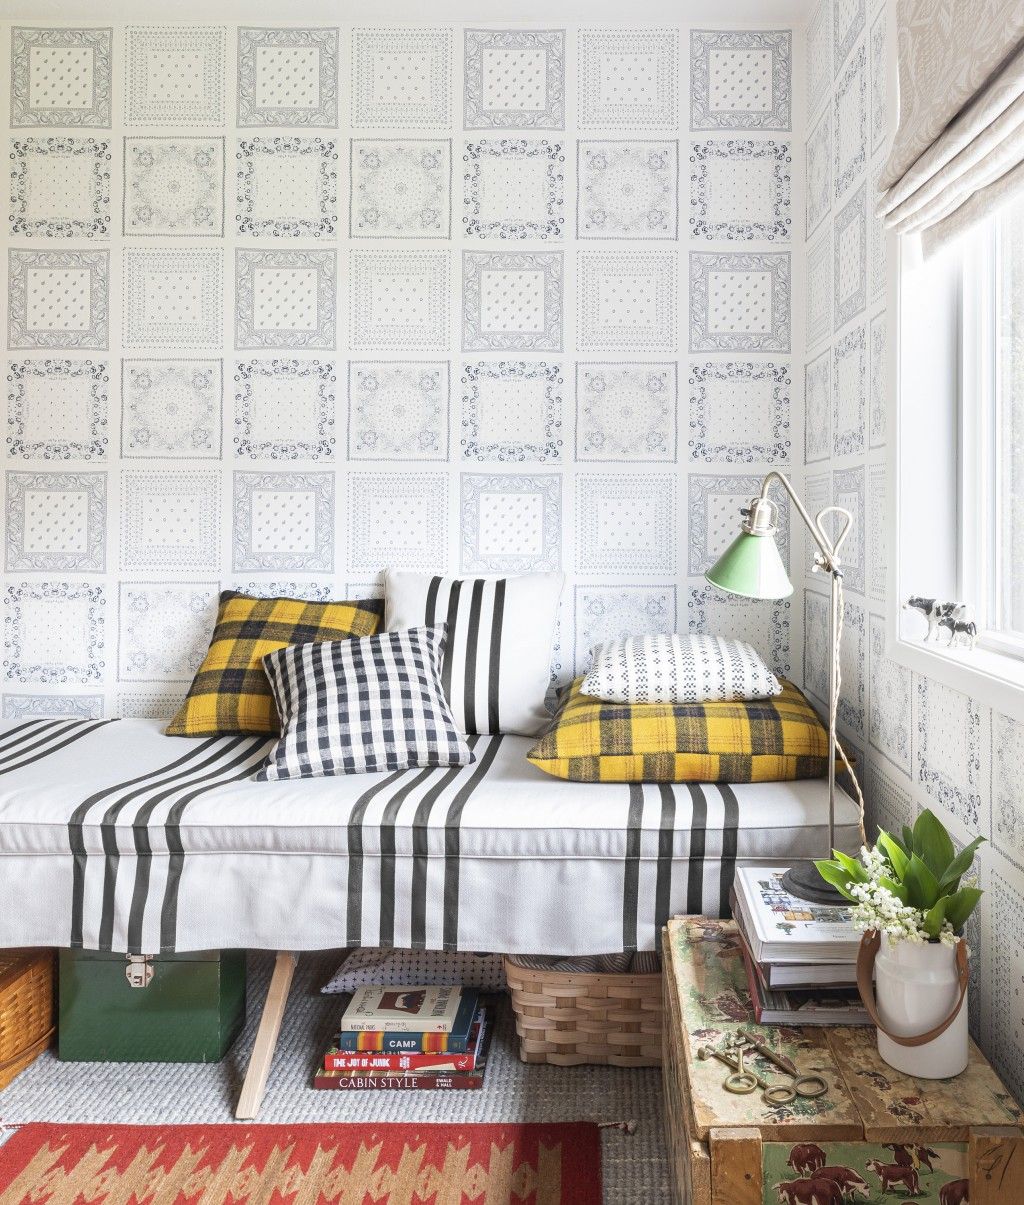 This image released by Portland Oregon-based interior designer Max Humphrey shows a room with a wallpaper design inspired by  bandanas. (Christopher D...